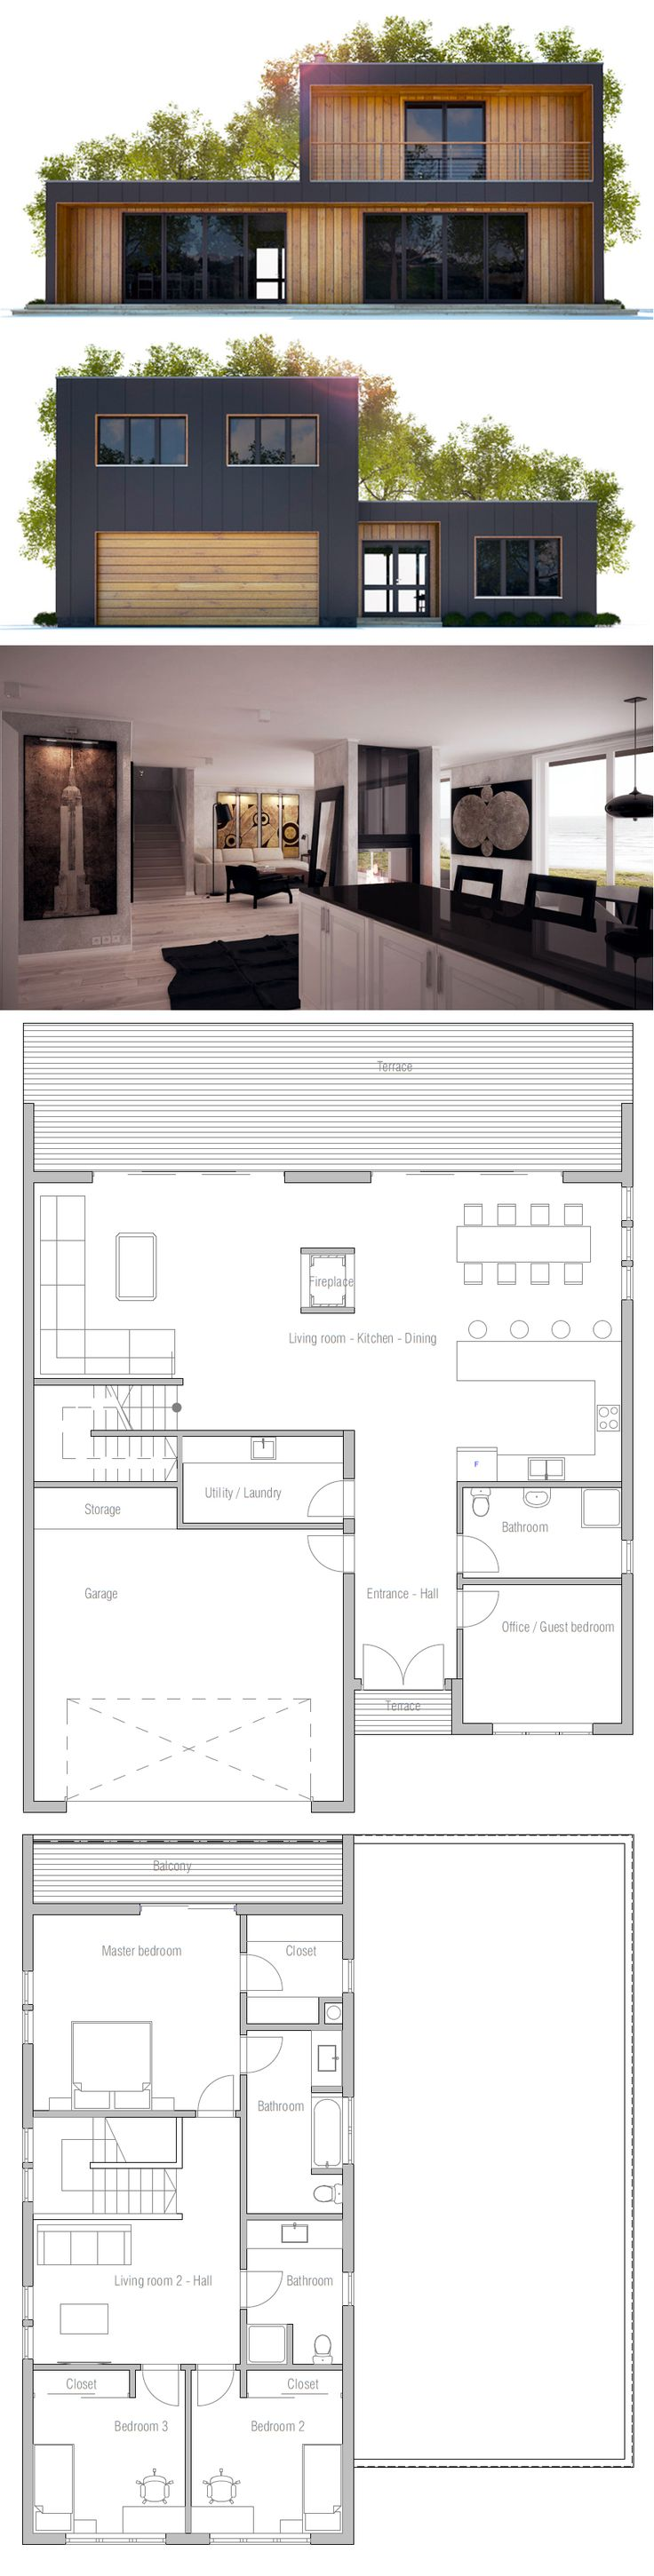 Miraculous 17 Best Ideas About Container House Plans On Pinterest Shipping Largest Home Design Picture Inspirations Pitcheantrous